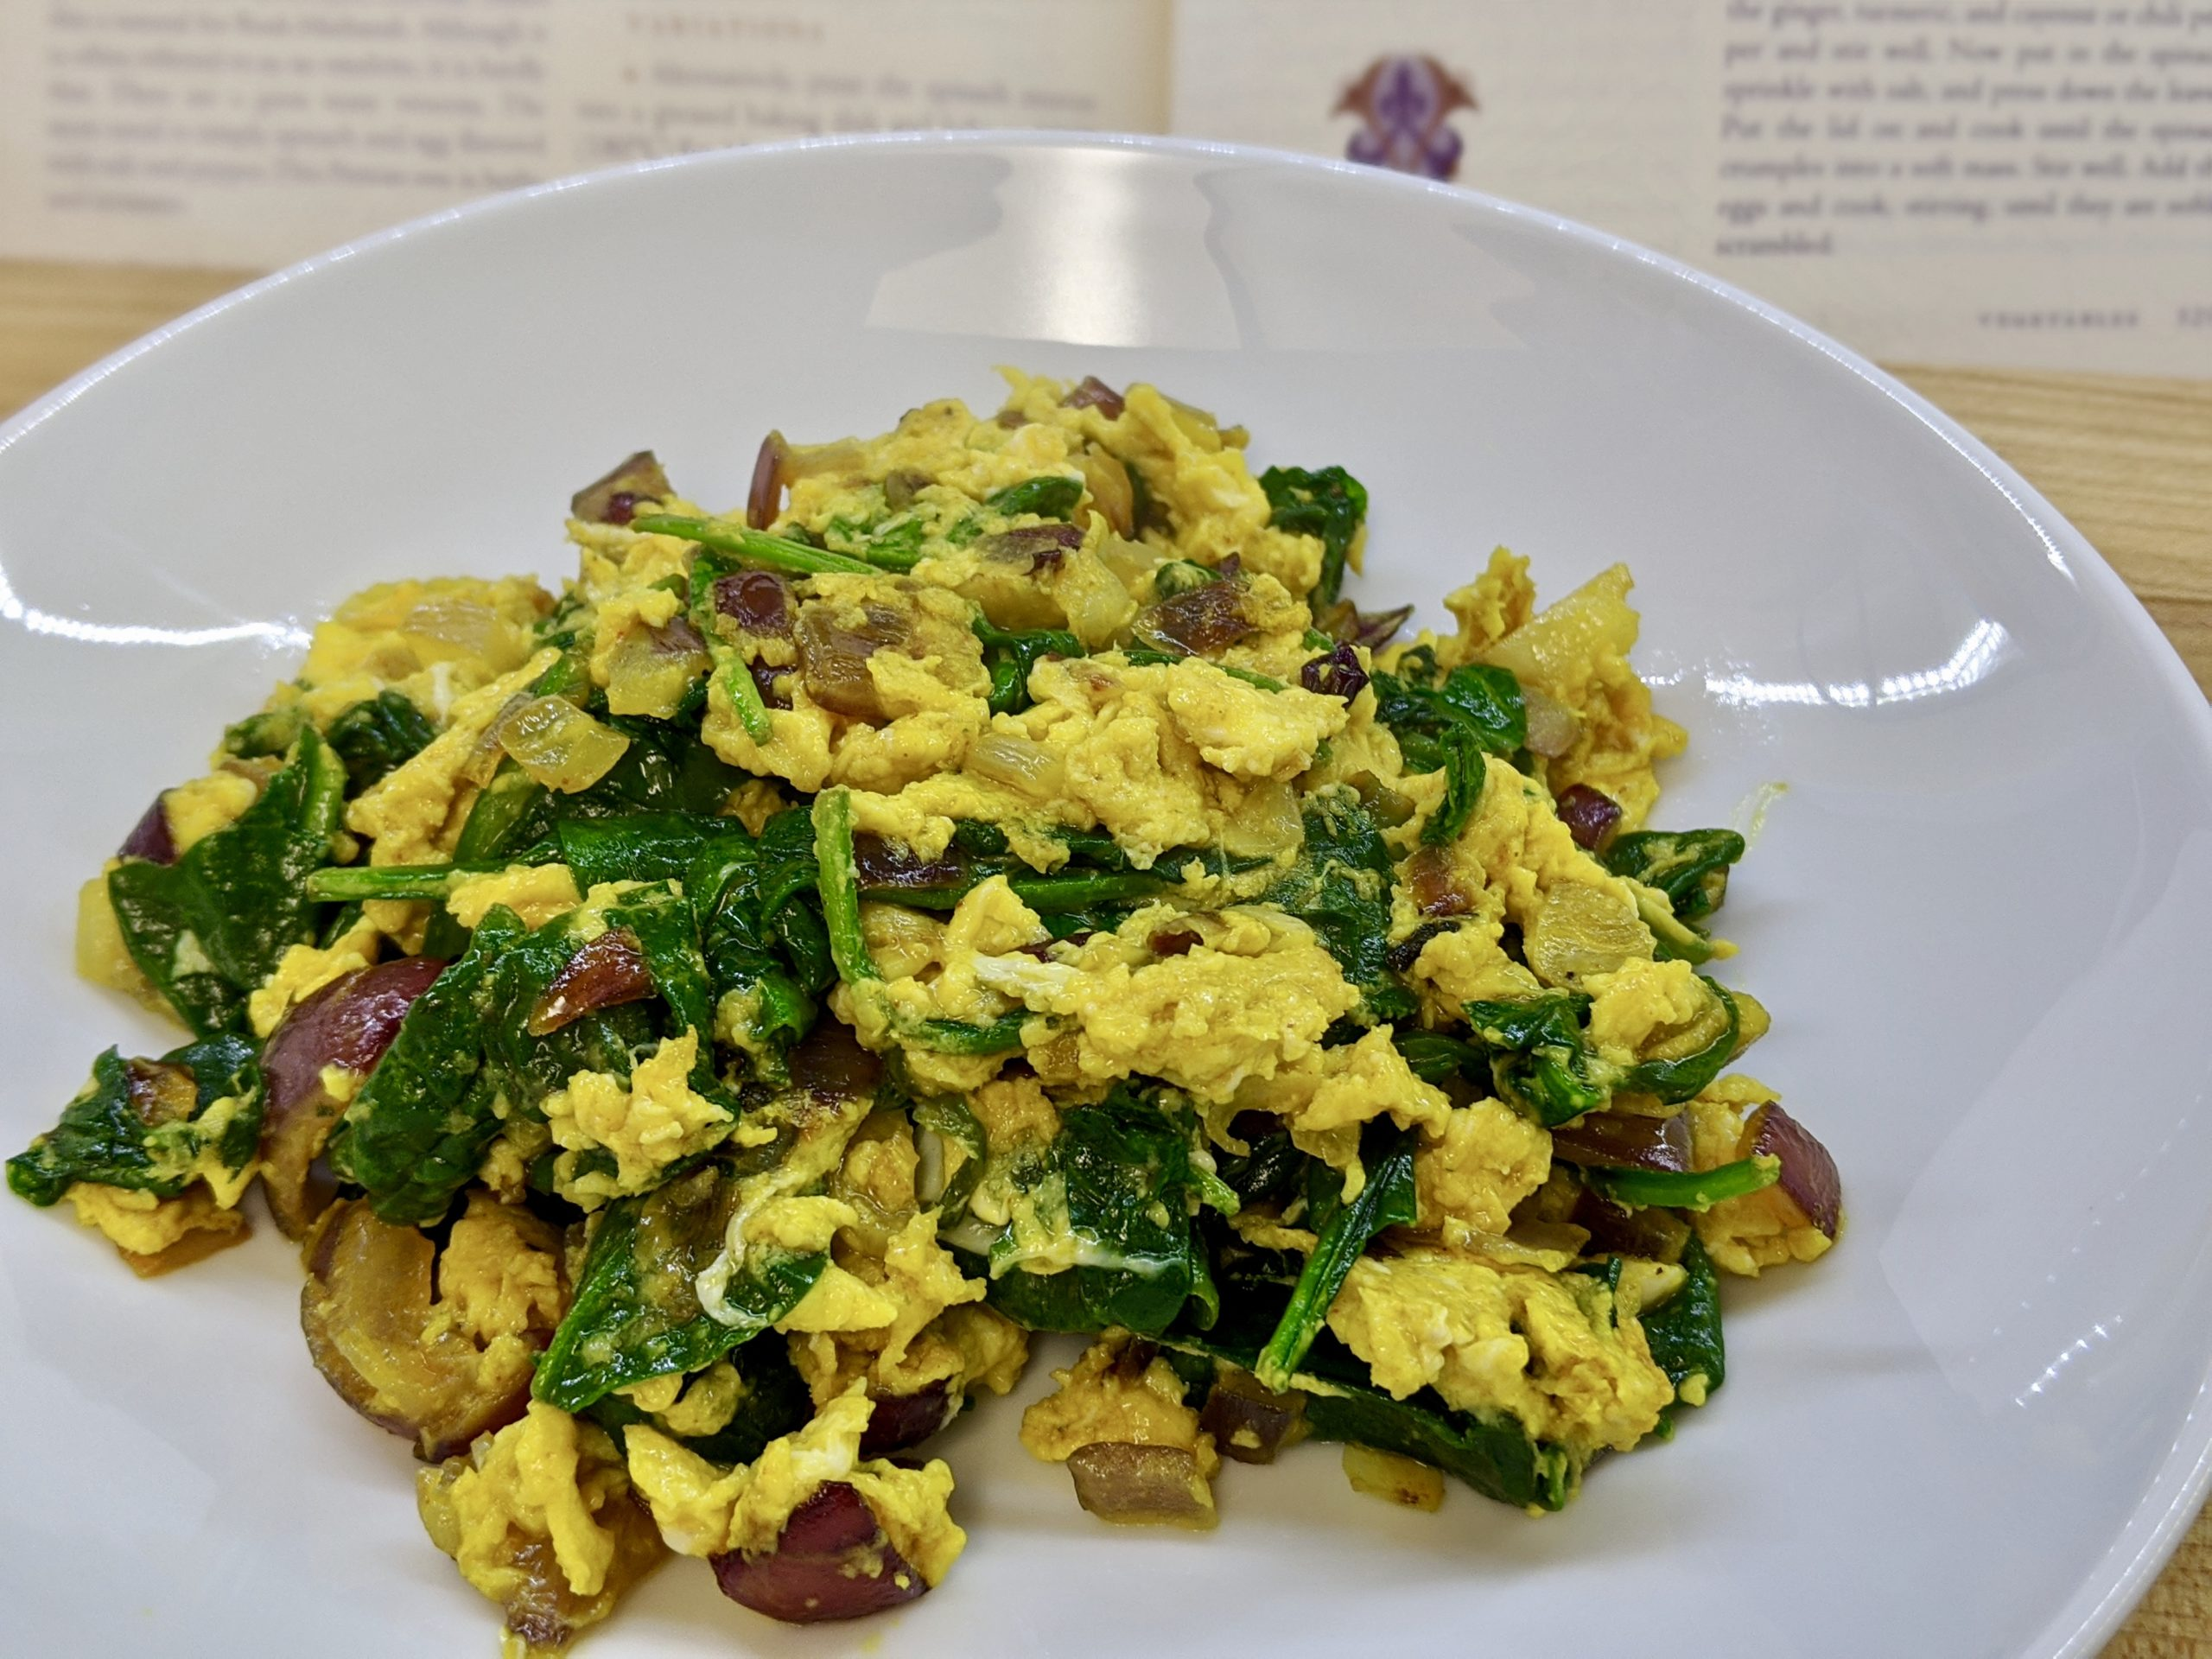 Meal 81 - Mufarka - Spiced Spinach with Scrambled Eggs